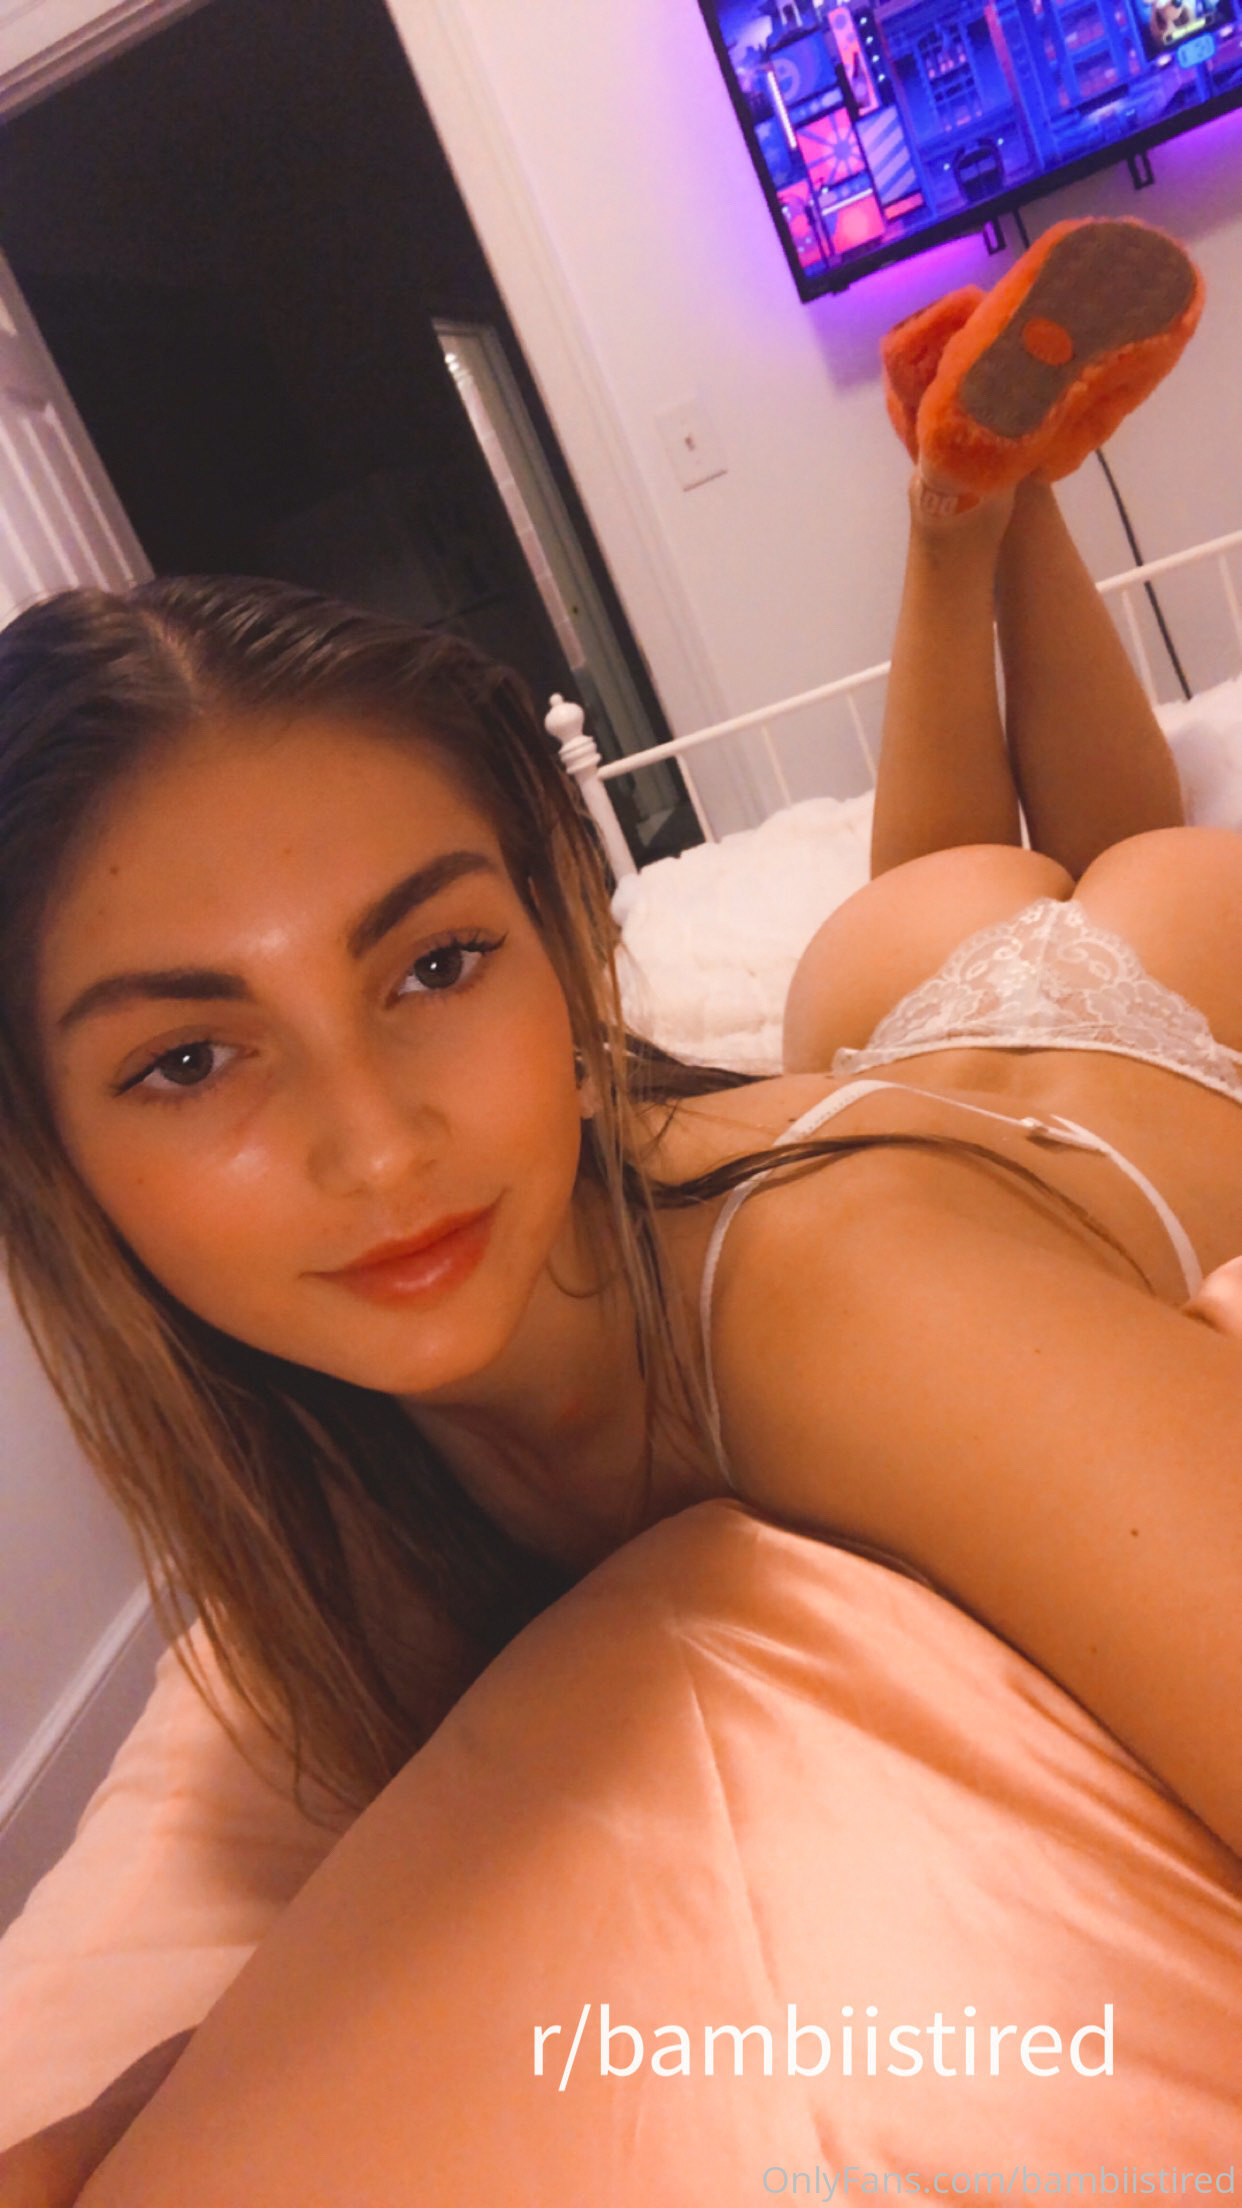 Bambiistired Onlyfans 0205